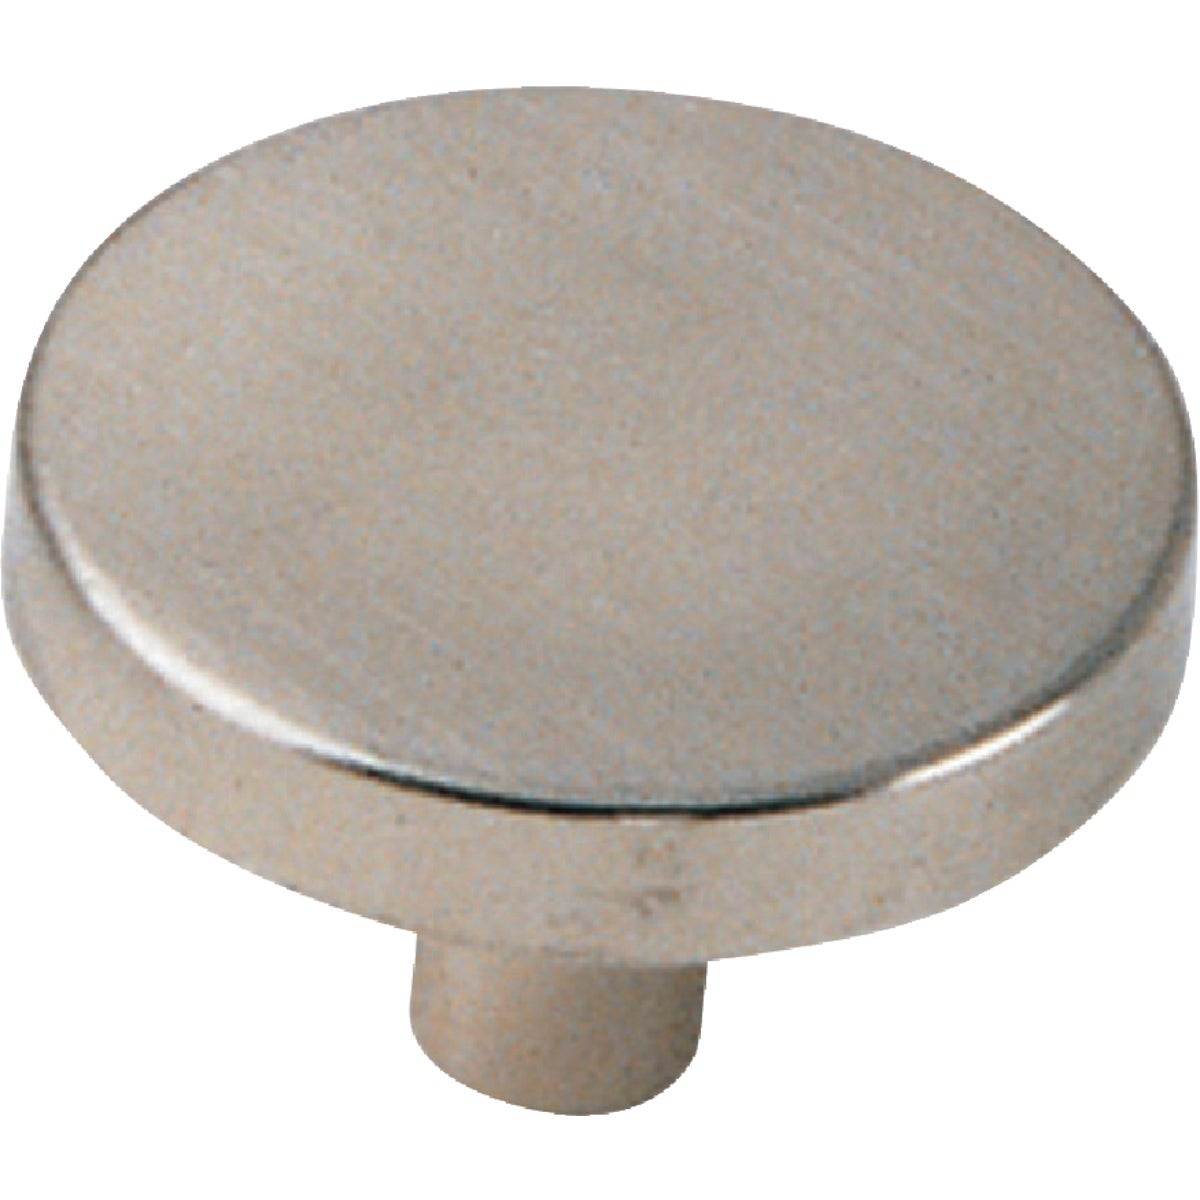 "1-1/4"" SATIN CHROME KNOB - 34539 by Laurey Co"